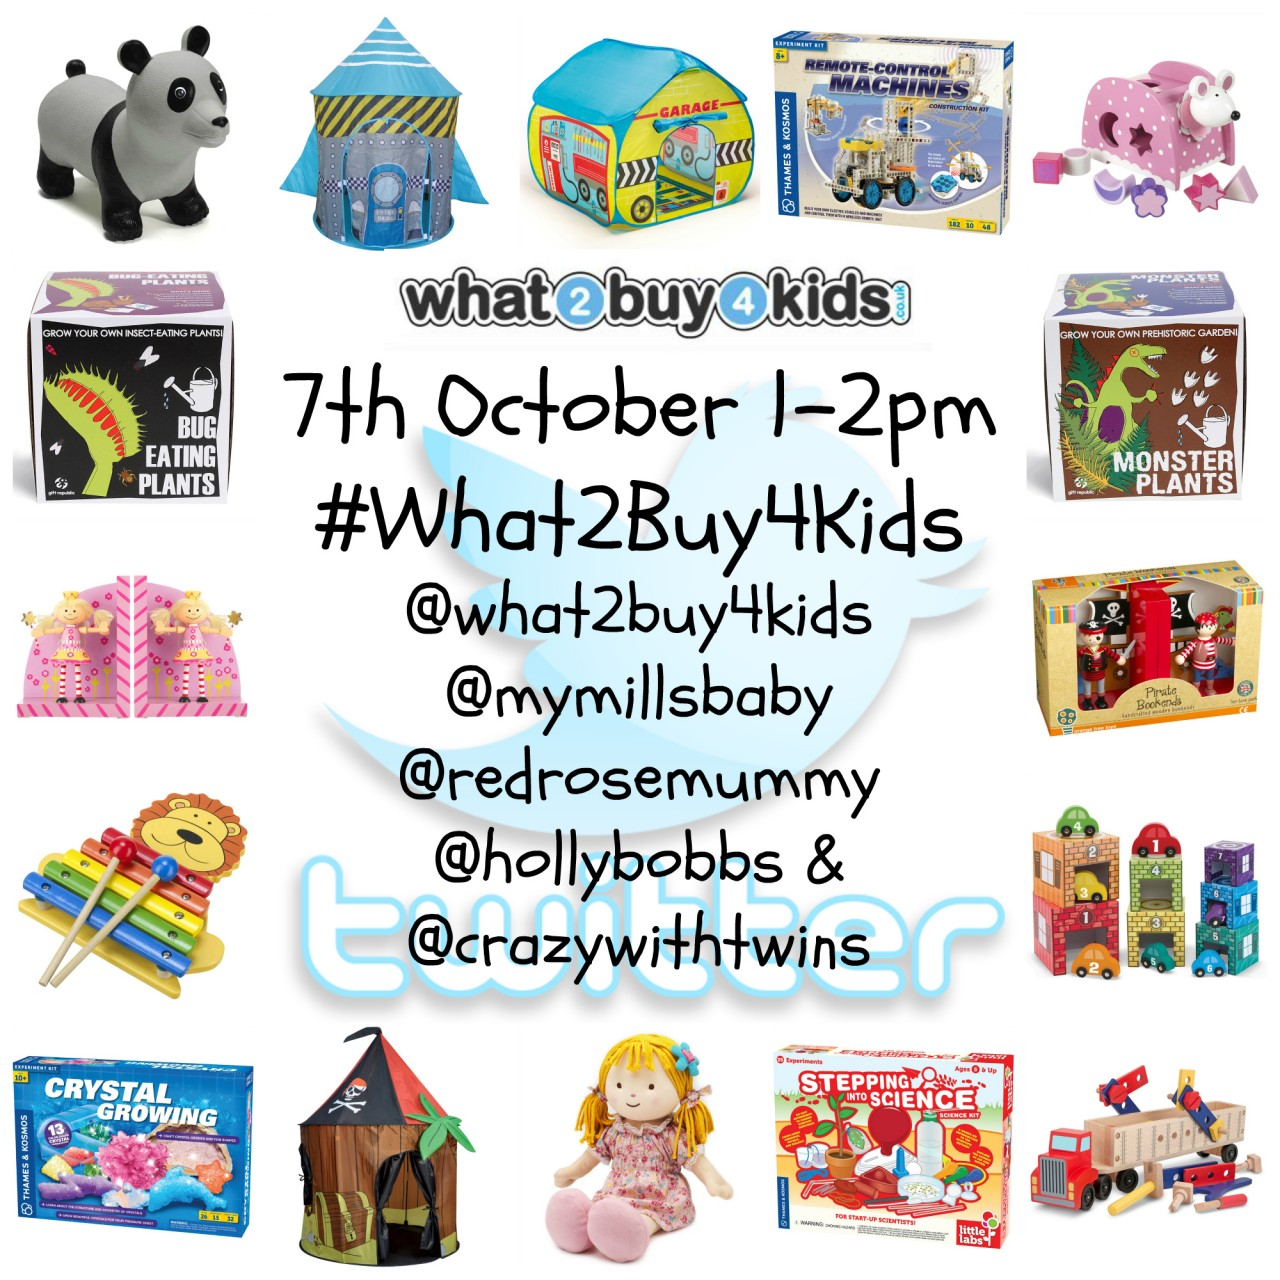 #What2Buy4Kids Twitter Party, Tuesday 7/10/14, 1-2pm